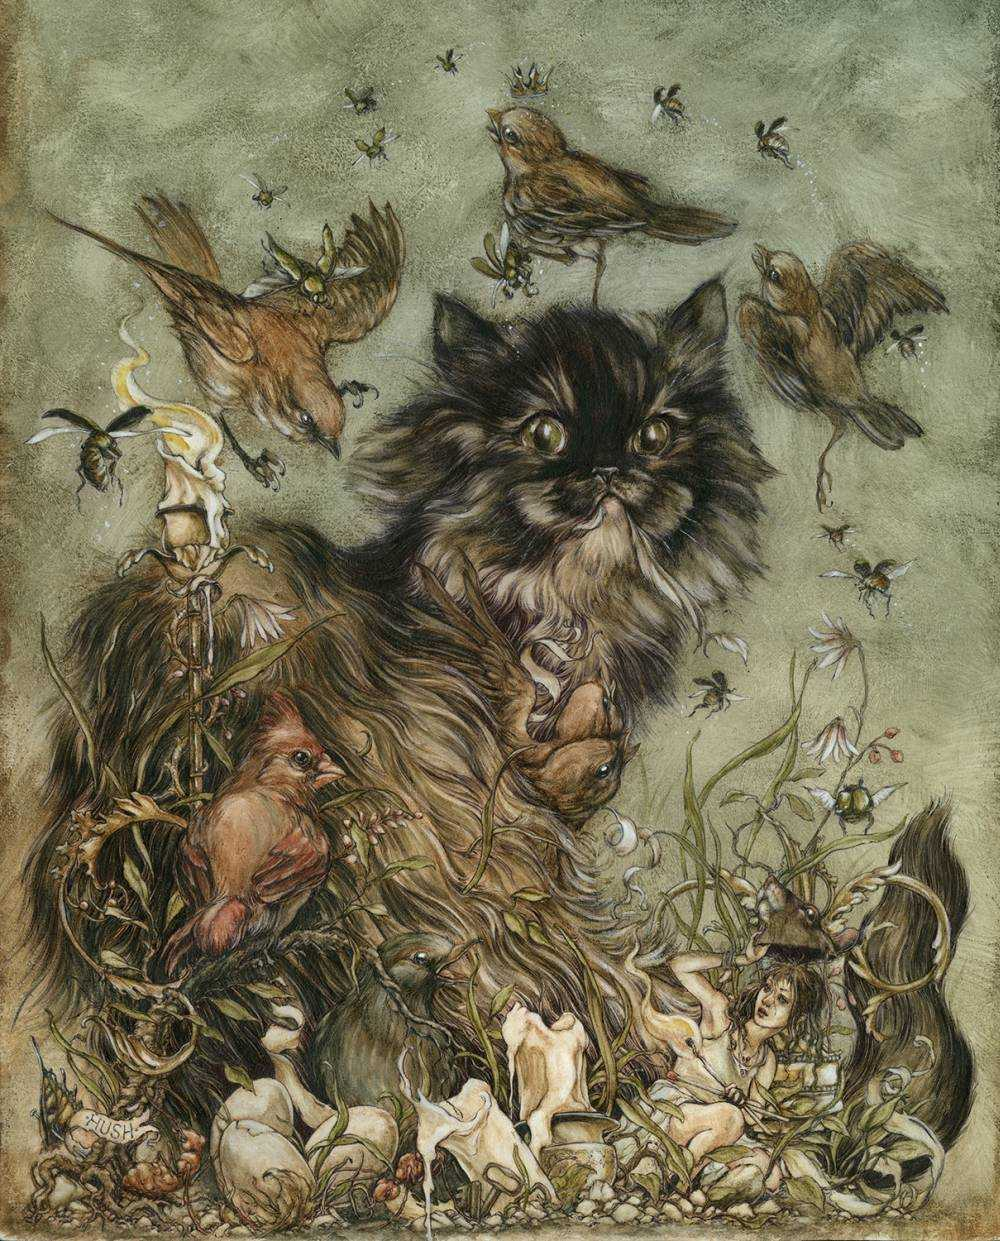 Jeremy hush - Illustrations-themischeiviousandthewayward